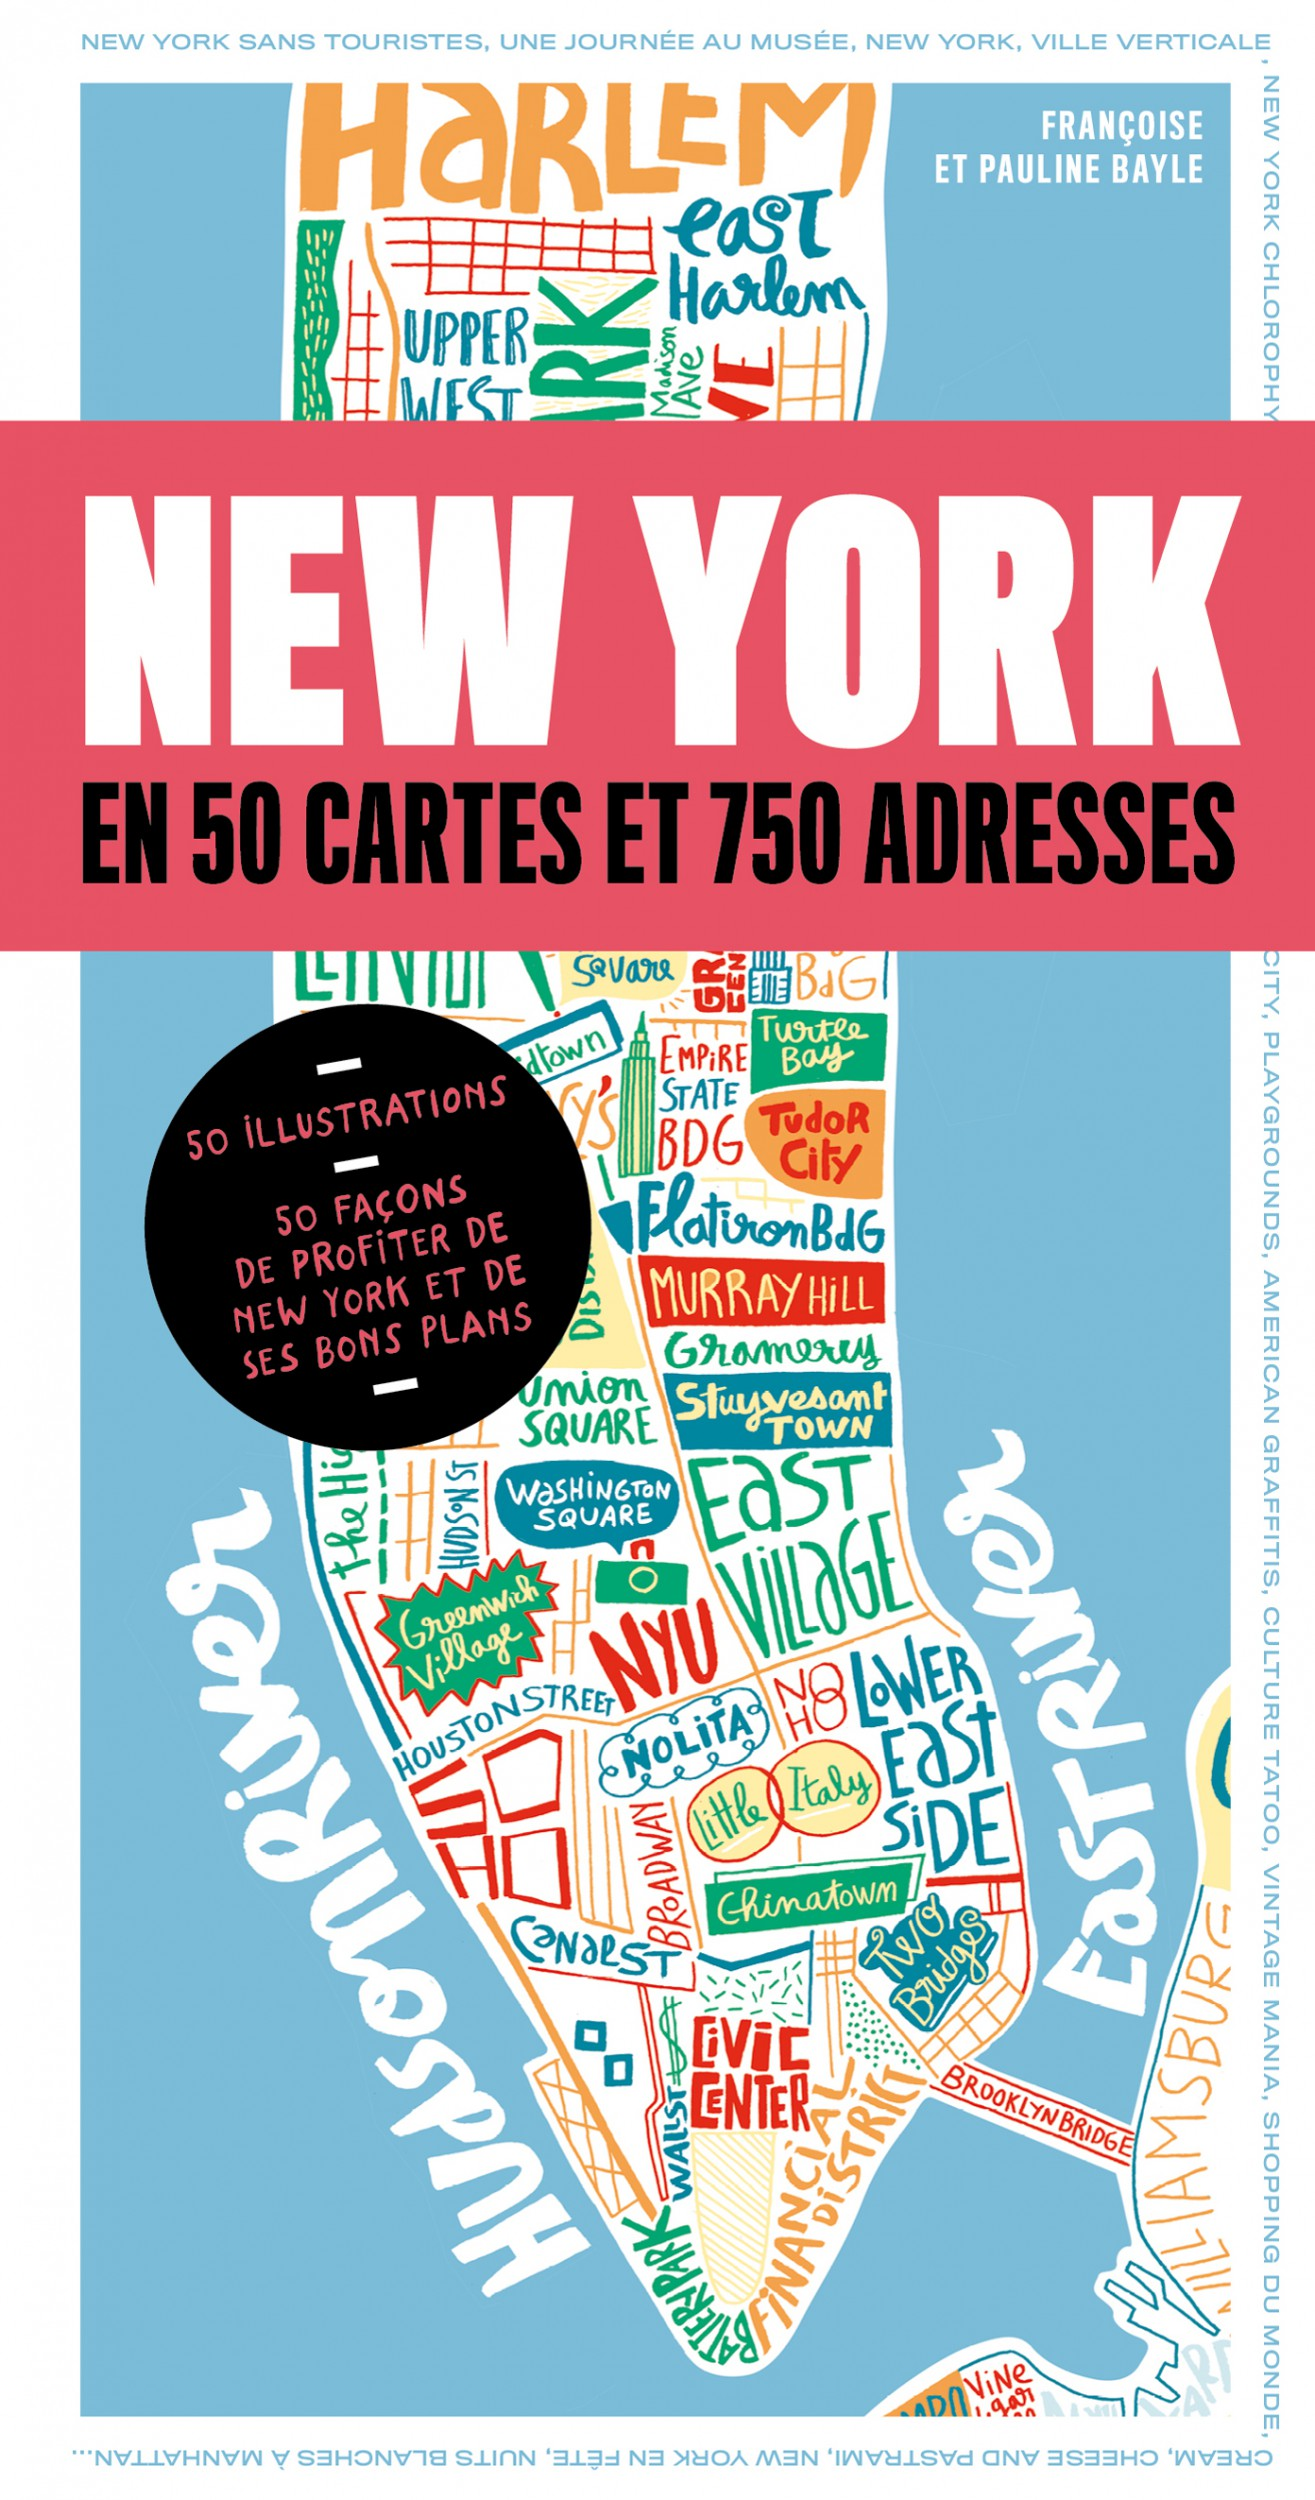 http://www.oloeditions.com/wp-content/uploads/2015/06/50-MAPS-NEW-YORK-1COUV-1315x2500.jpg